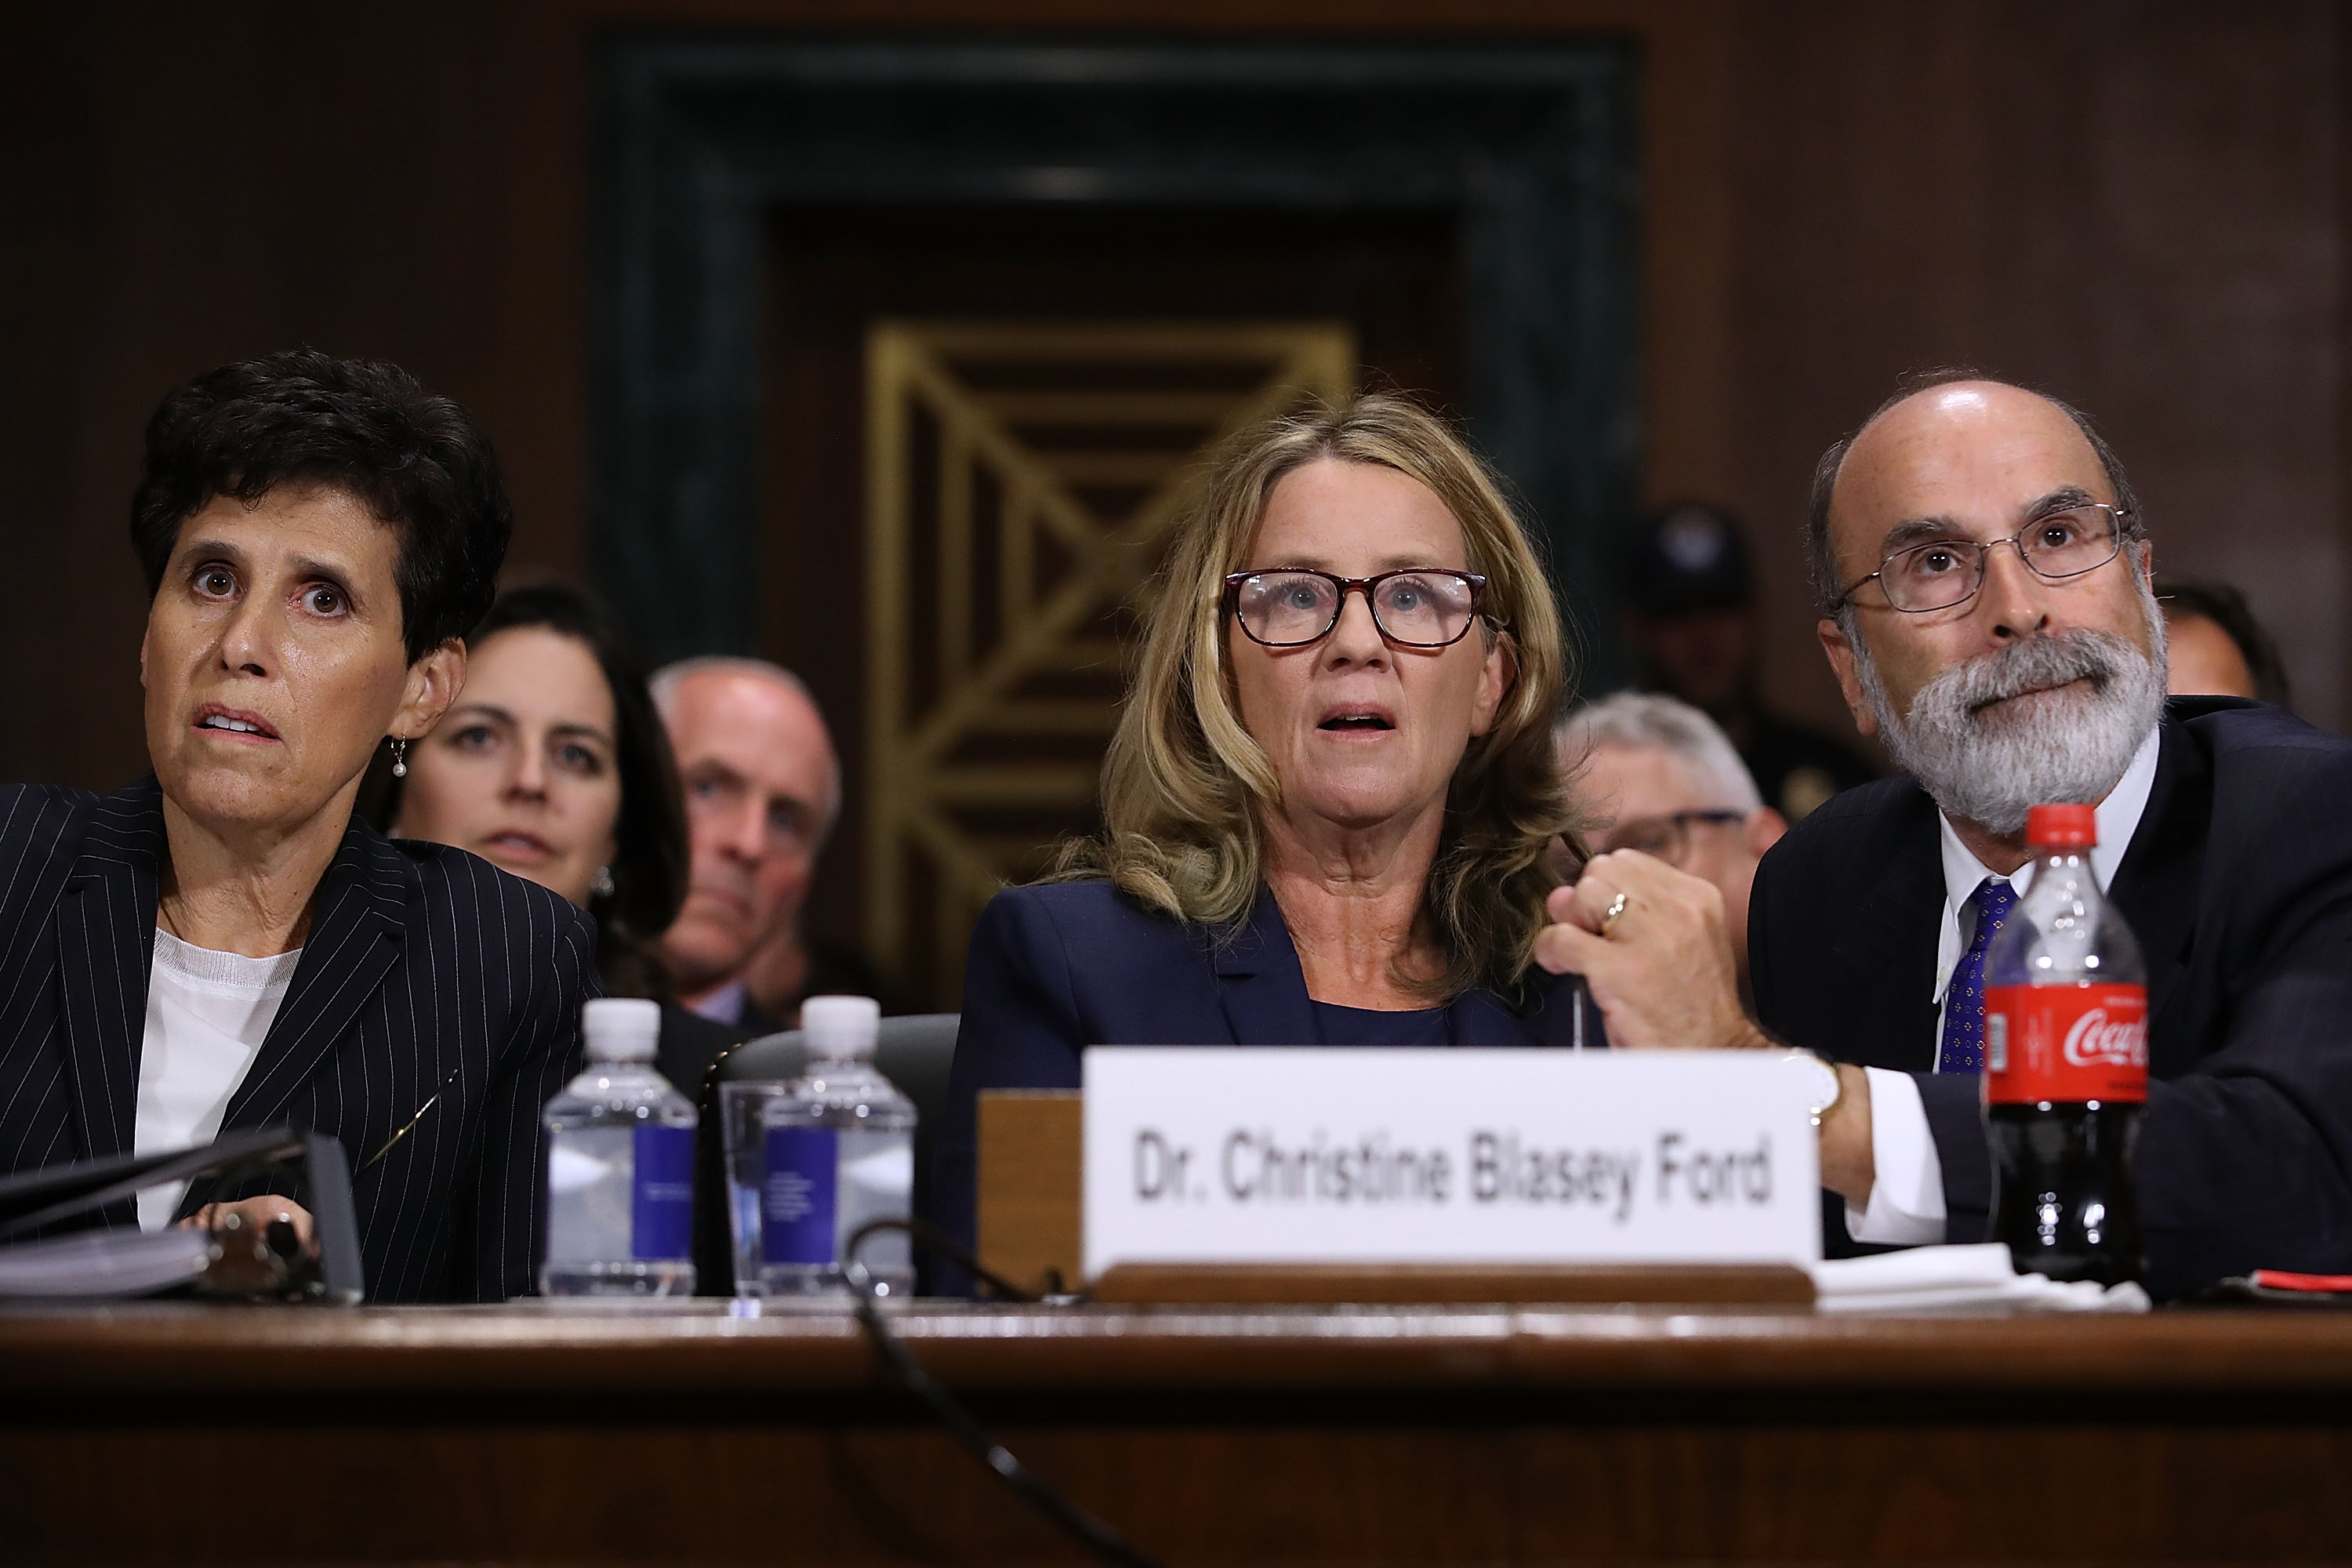 Christine Ford's Close High School Friend Said Her Story of Alleged Assault Isn't Believable